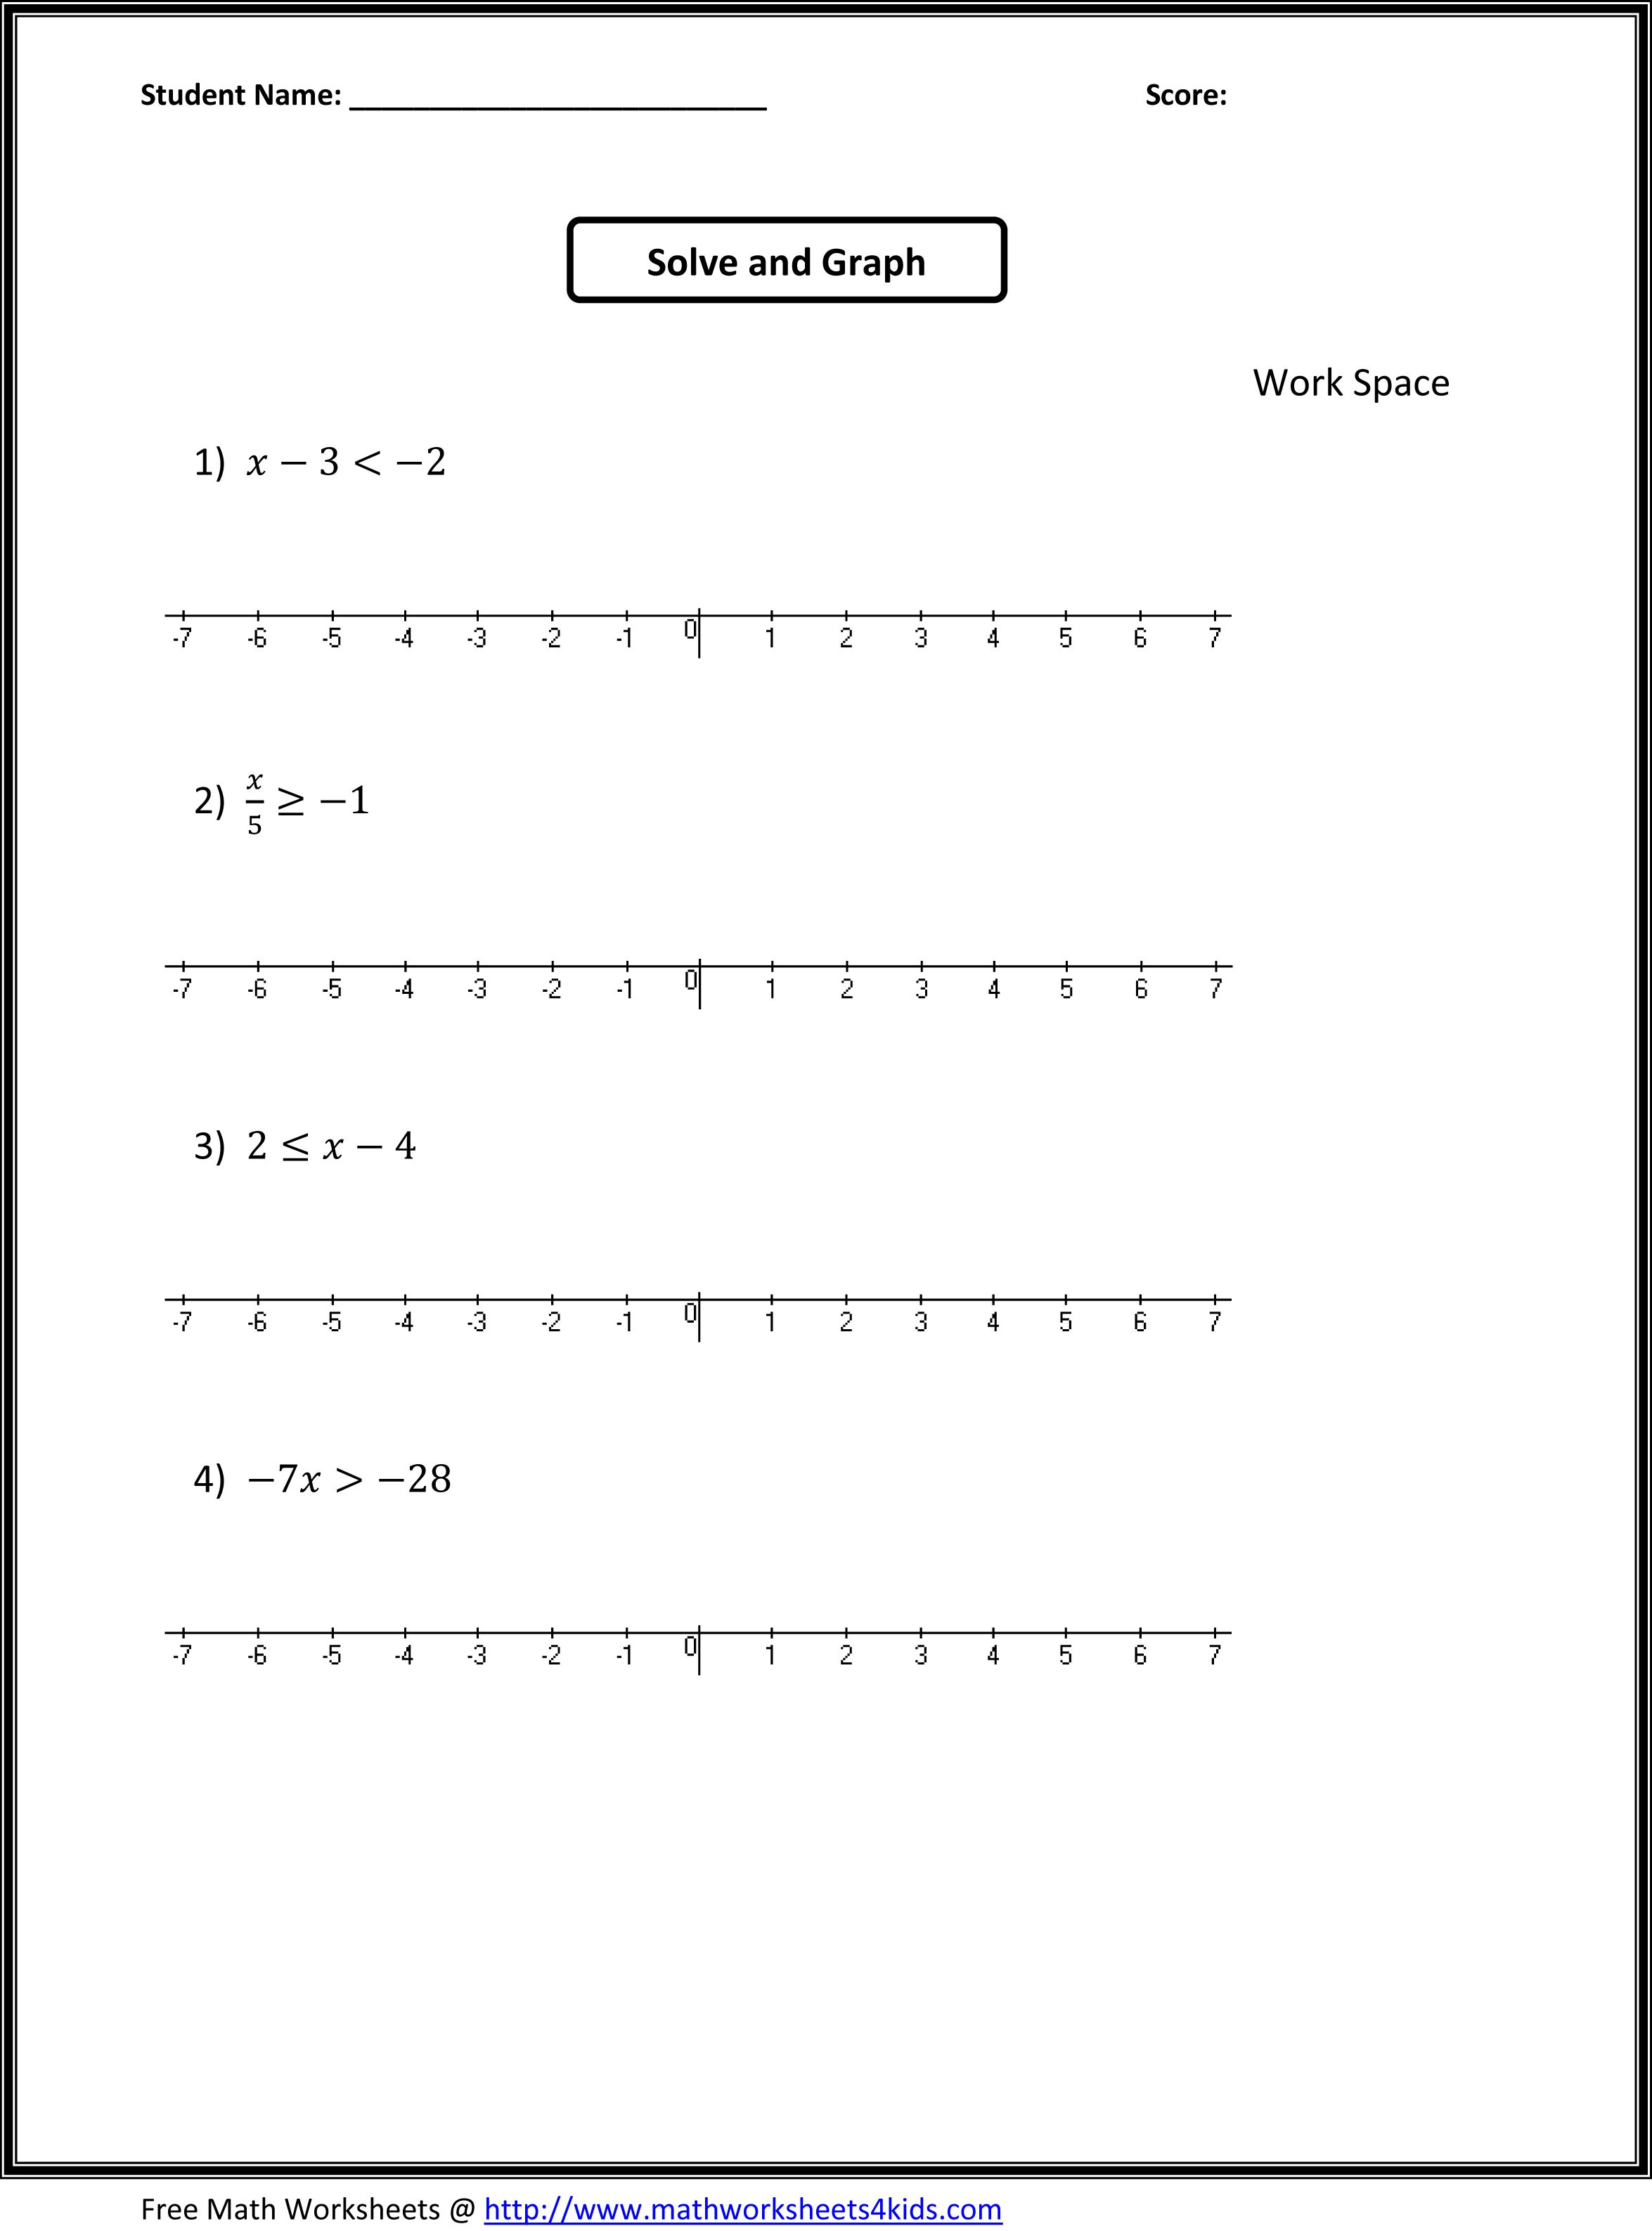 Worksheets Free Math Worksheets 7th Grade 7th grade algebra worksheets math places math